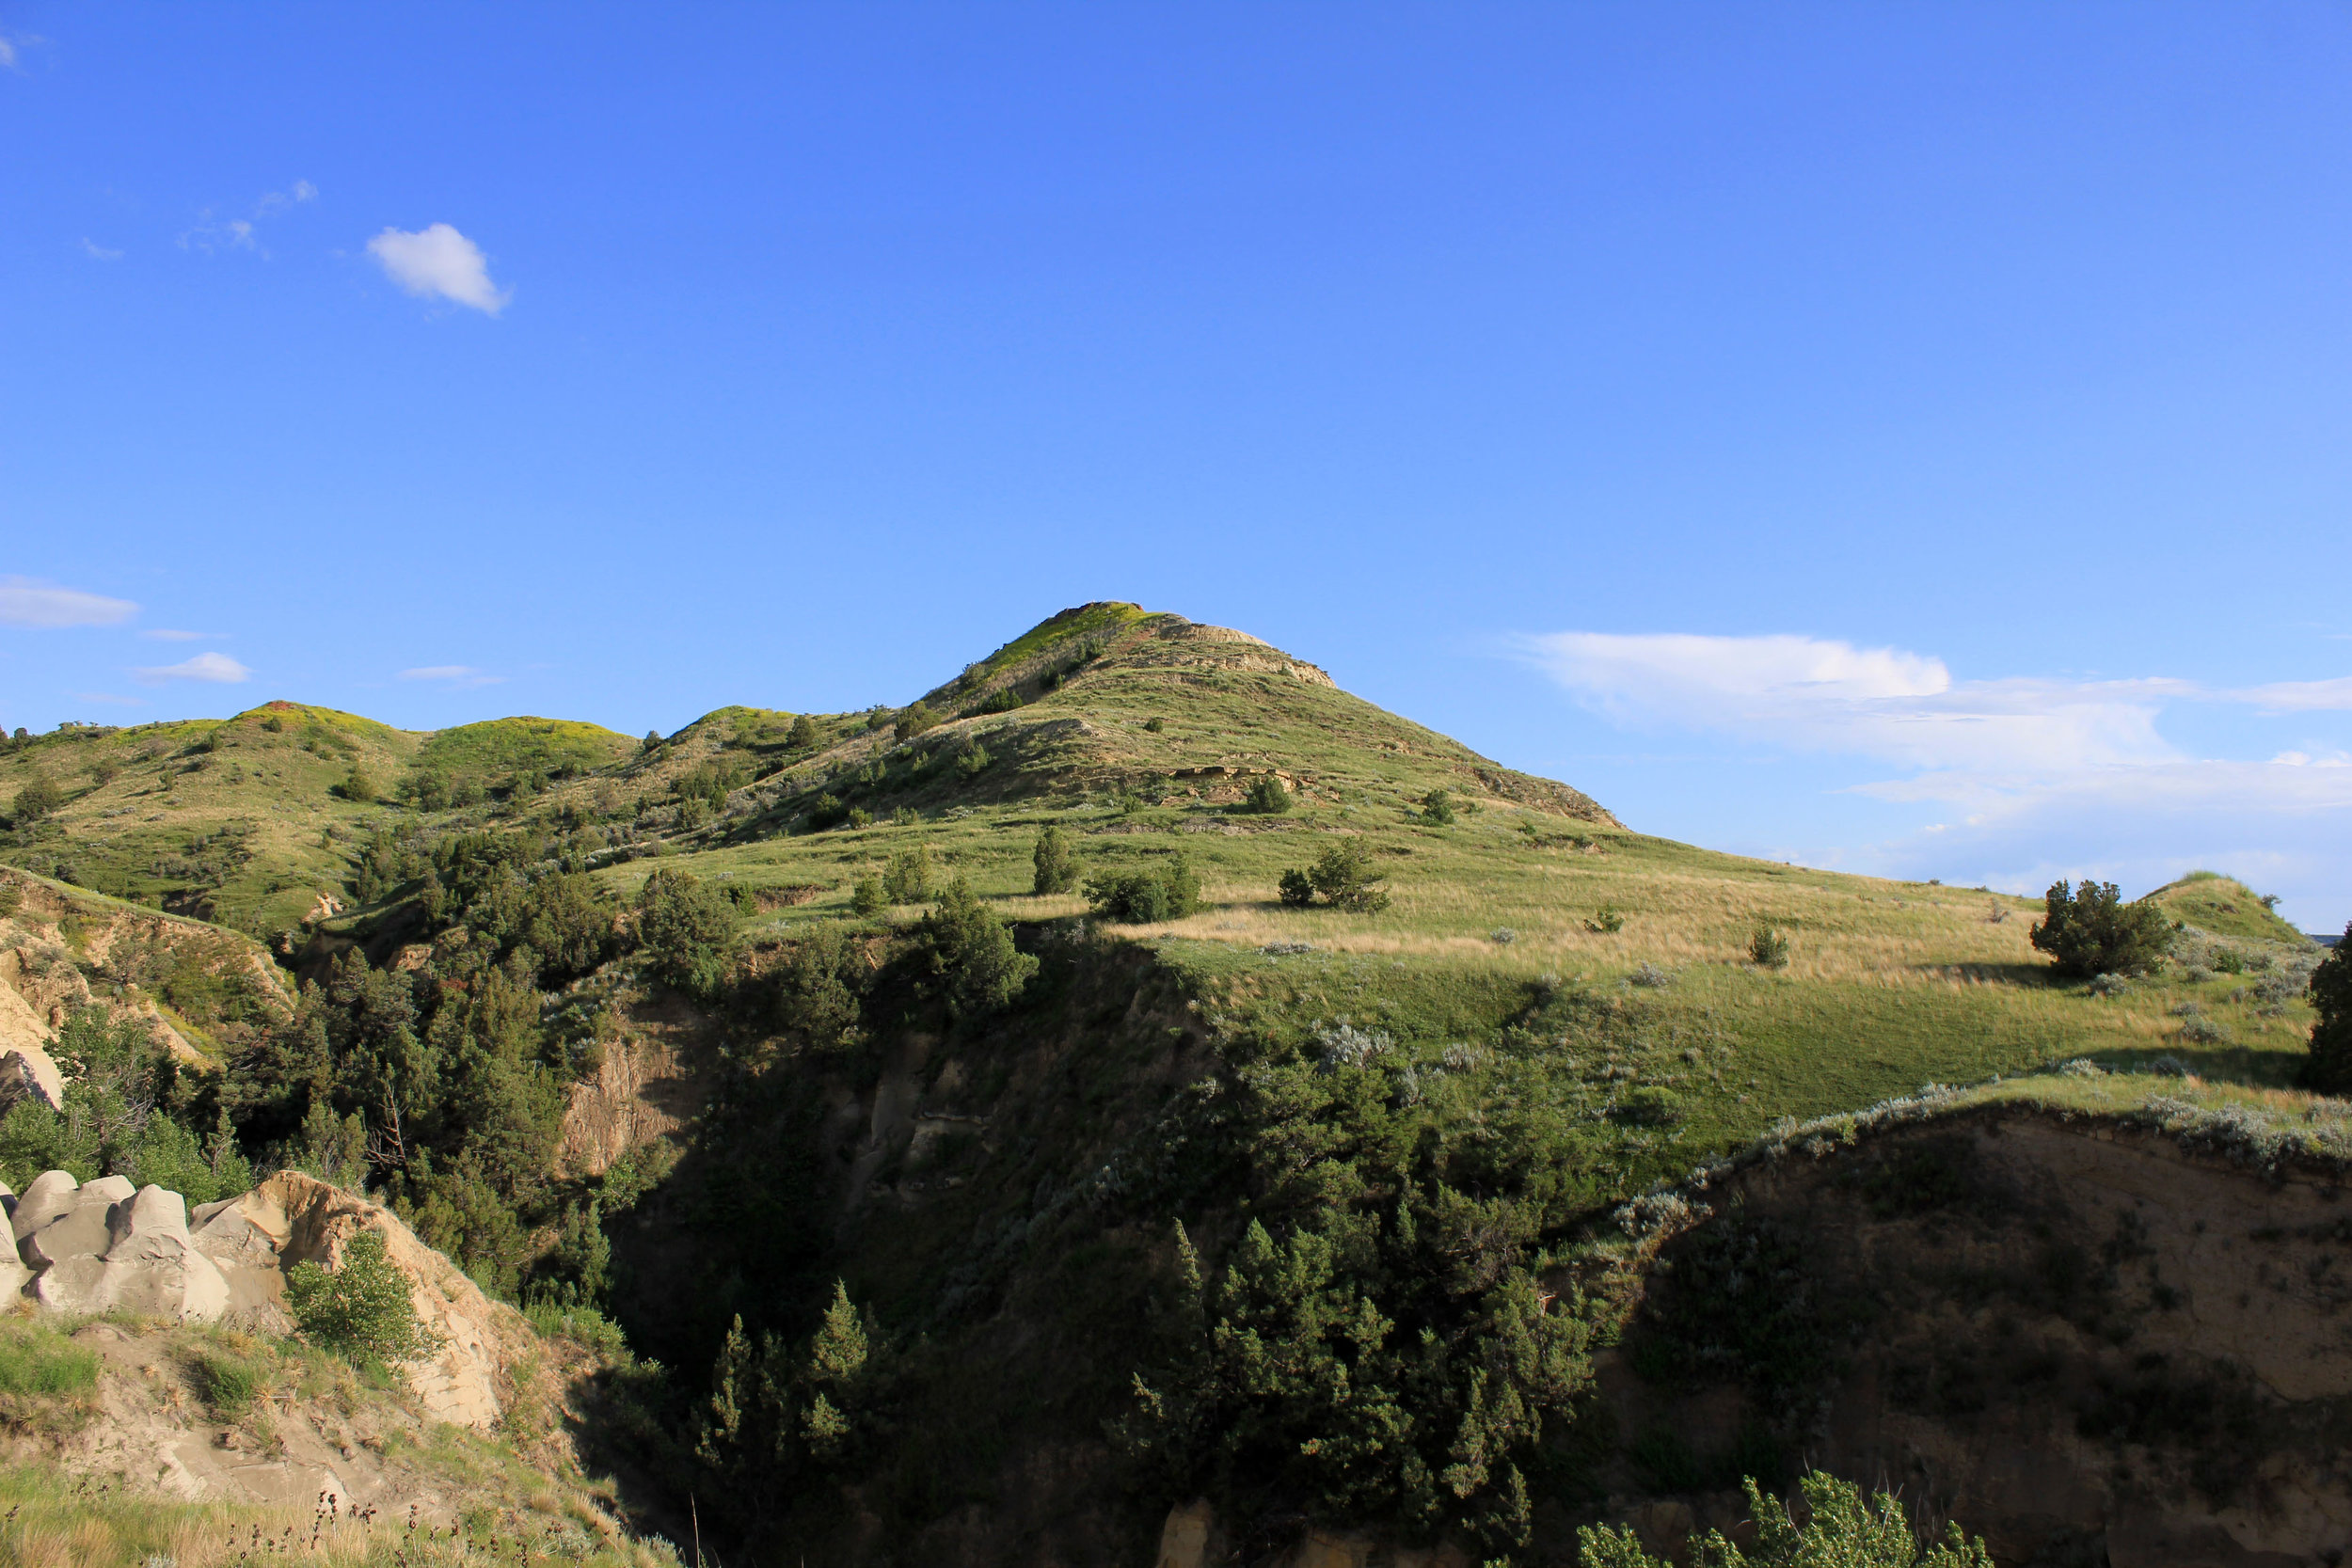 Mountain and Hill Tops - Cremated remains contain a lot of phosphates which can upset the local soil ecology. Plant species found in remote areas on impoverished soils are often very sensitive to change. So too many sets of ashes in the same place may suppress the wild flora and encourage aggressive, dominant species like nettles.